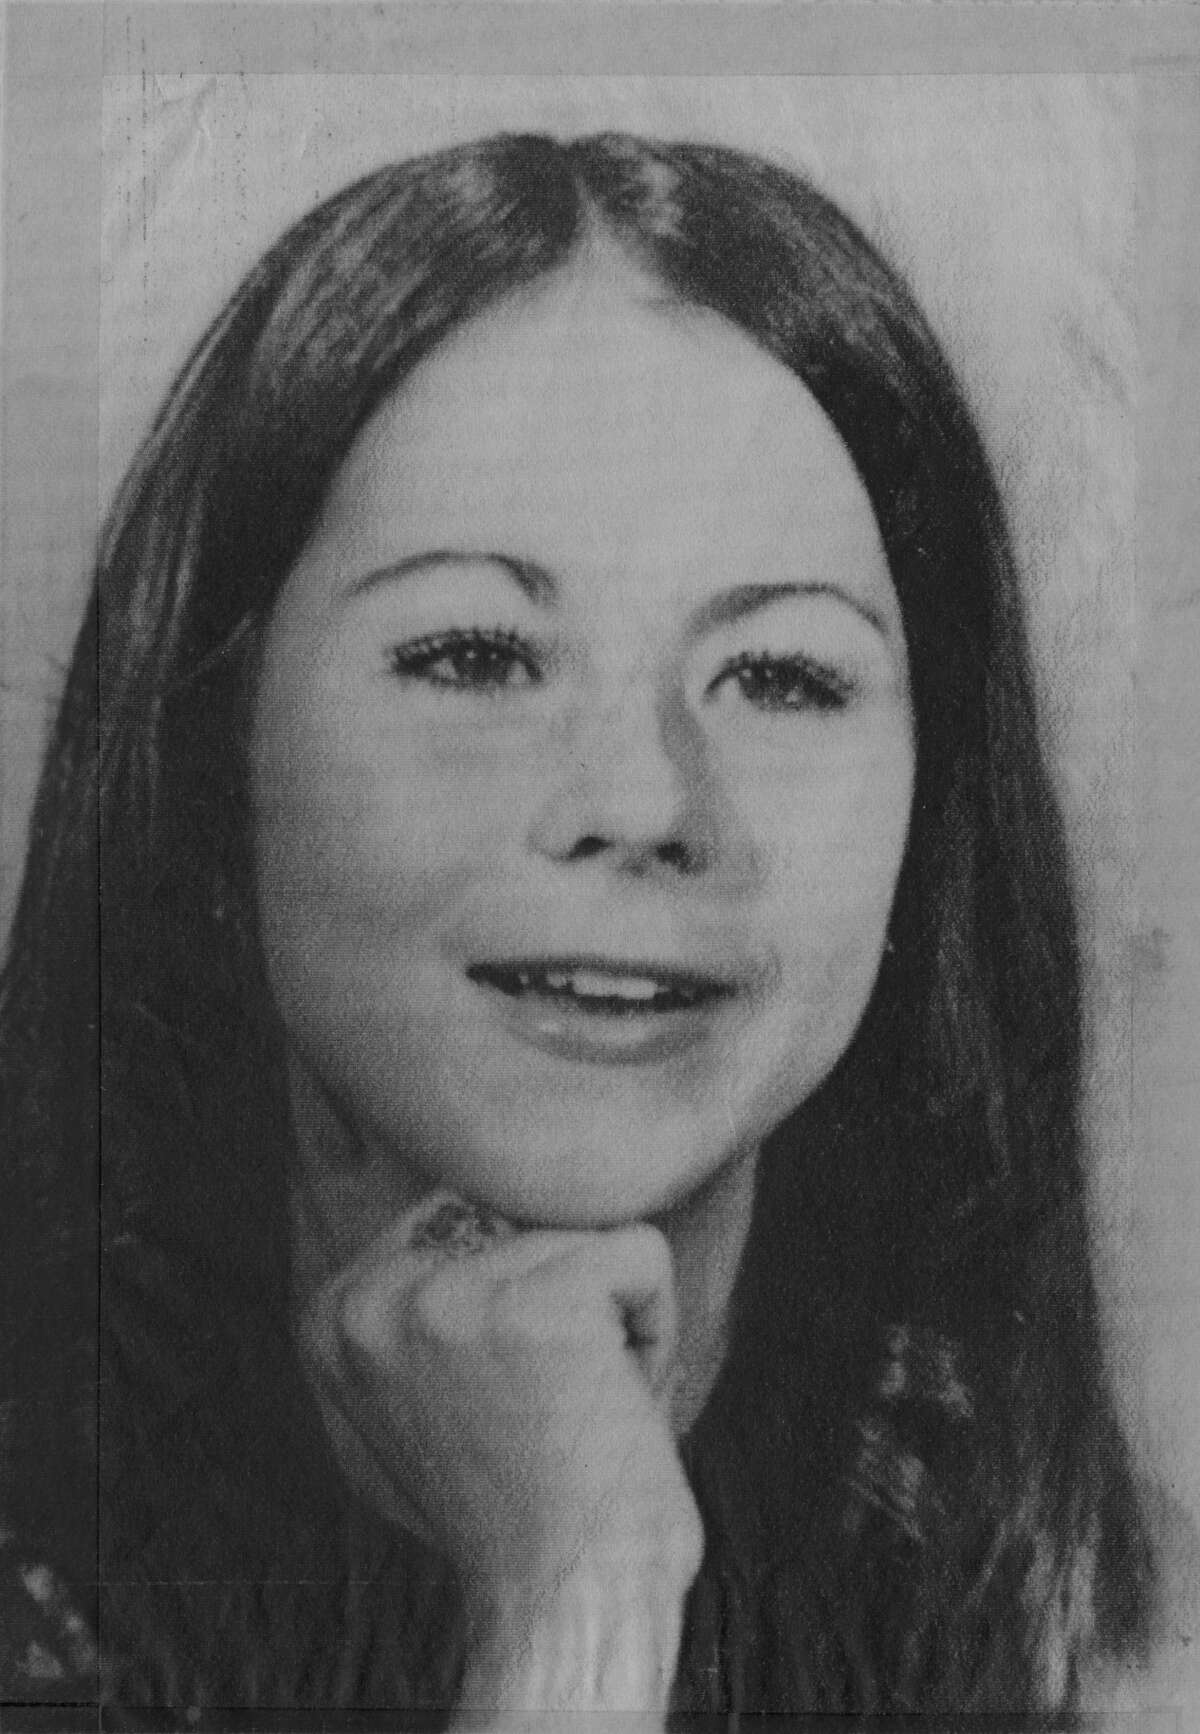 Maria Johnson, 15 The Galveston surfer girl and experienced water skier disappeared, along with Debbie Ackerman, after hitchhiking on Nov. 15, 1971. Their bodies were found in Turner Bayou three days later.